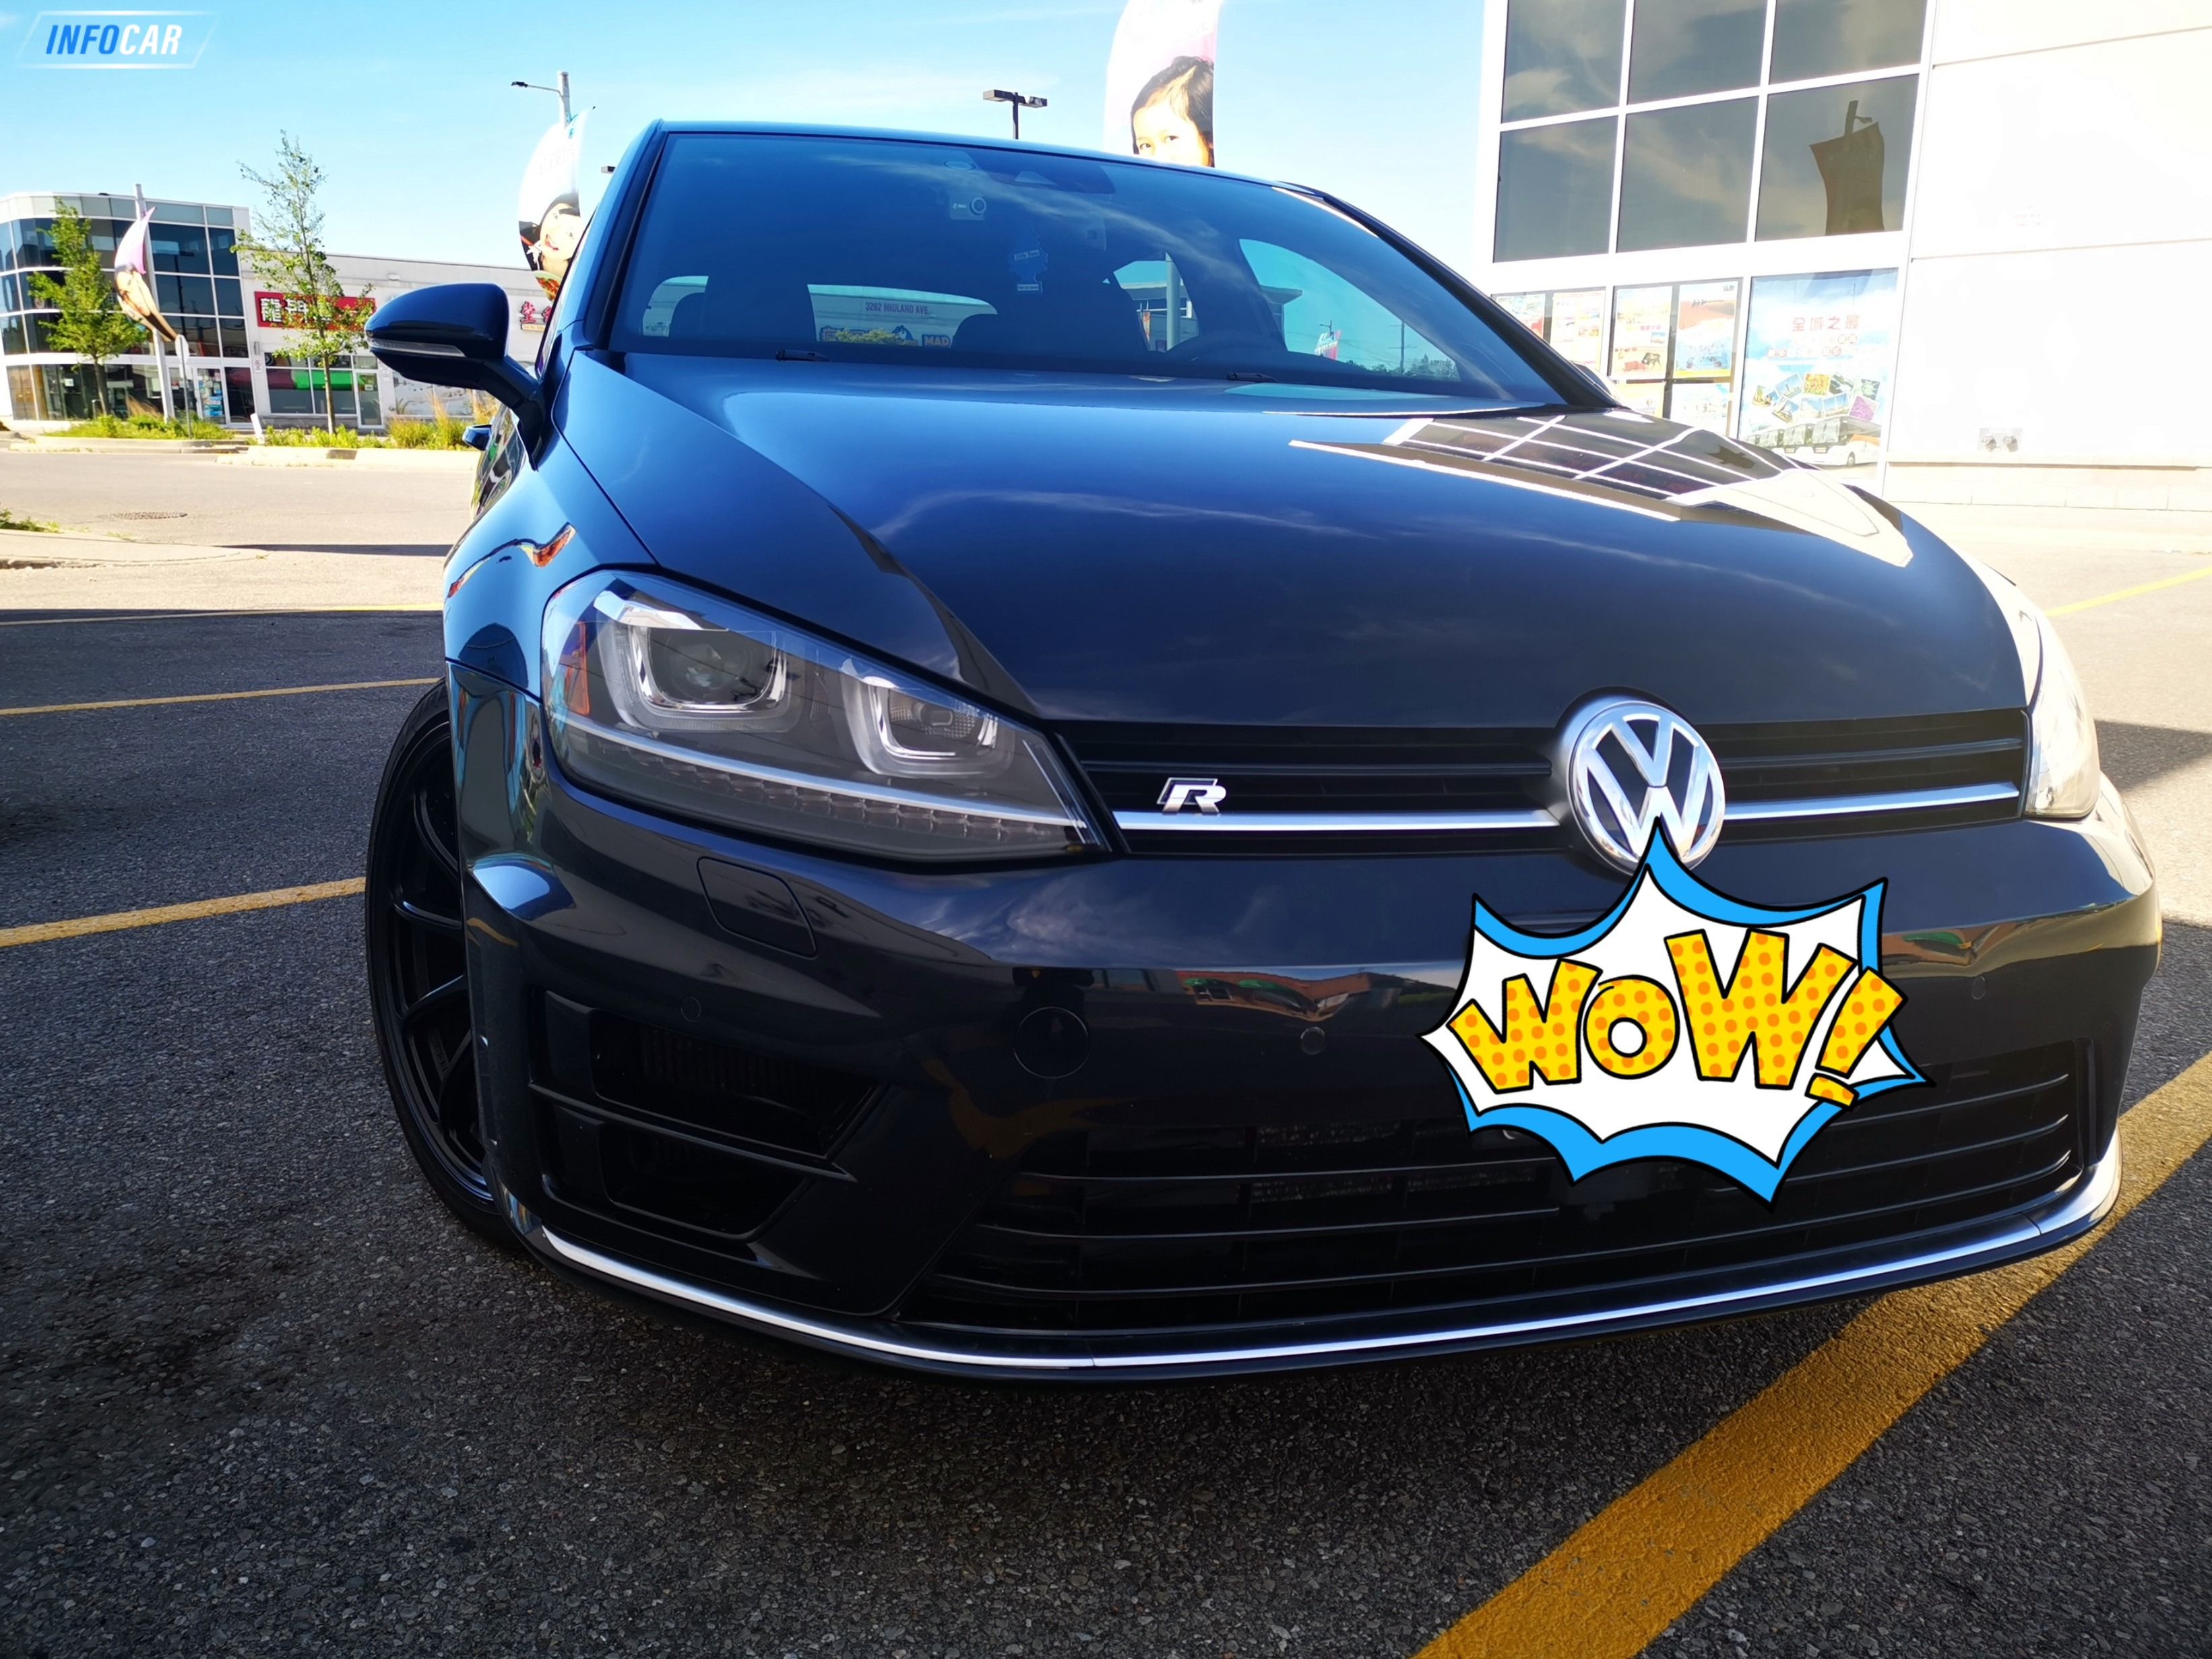 2016 Volkswagen Golf R  - INFOCAR - Toronto's Most Comprehensive New and Used Auto Trading Platform